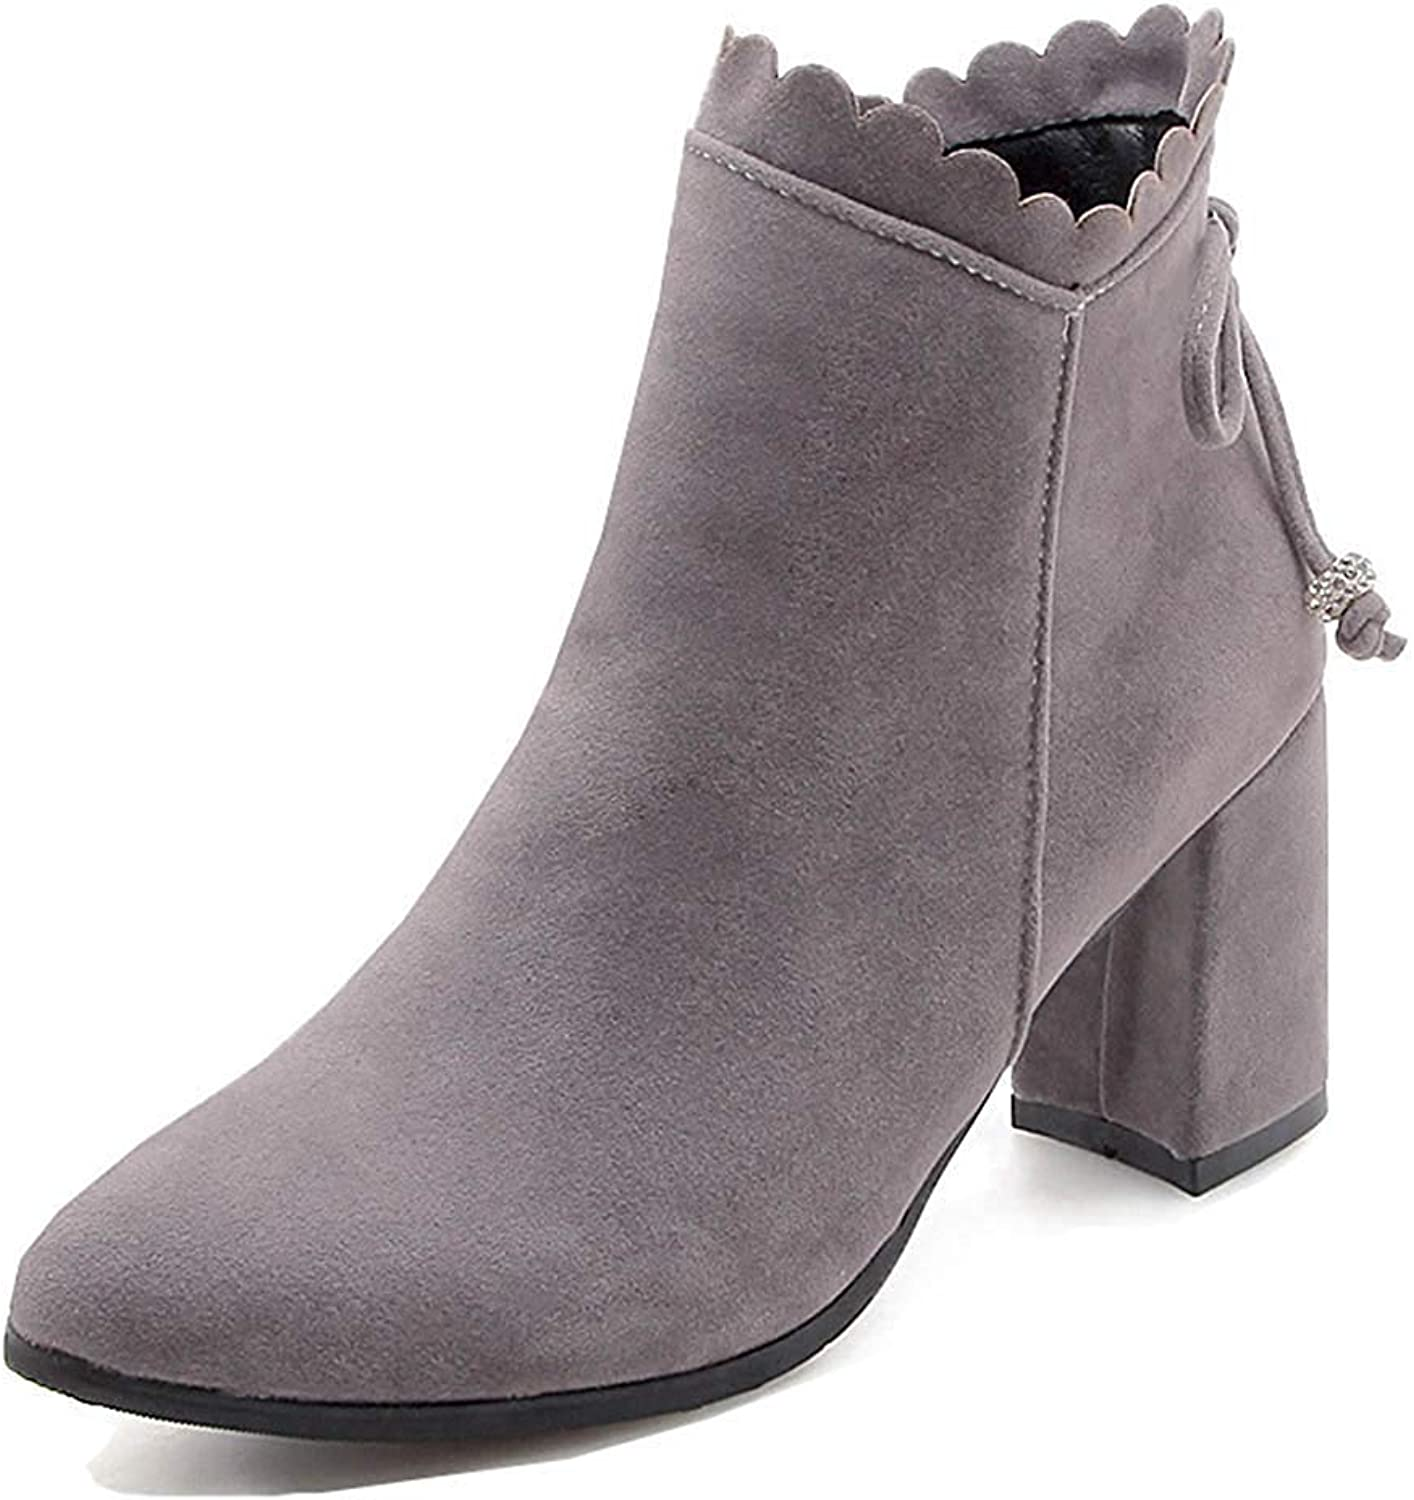 Unm Women's Elegant Pointy Toe Booties Chunky High Heel Inside Zip Up Dress Ankle Boots with Bows